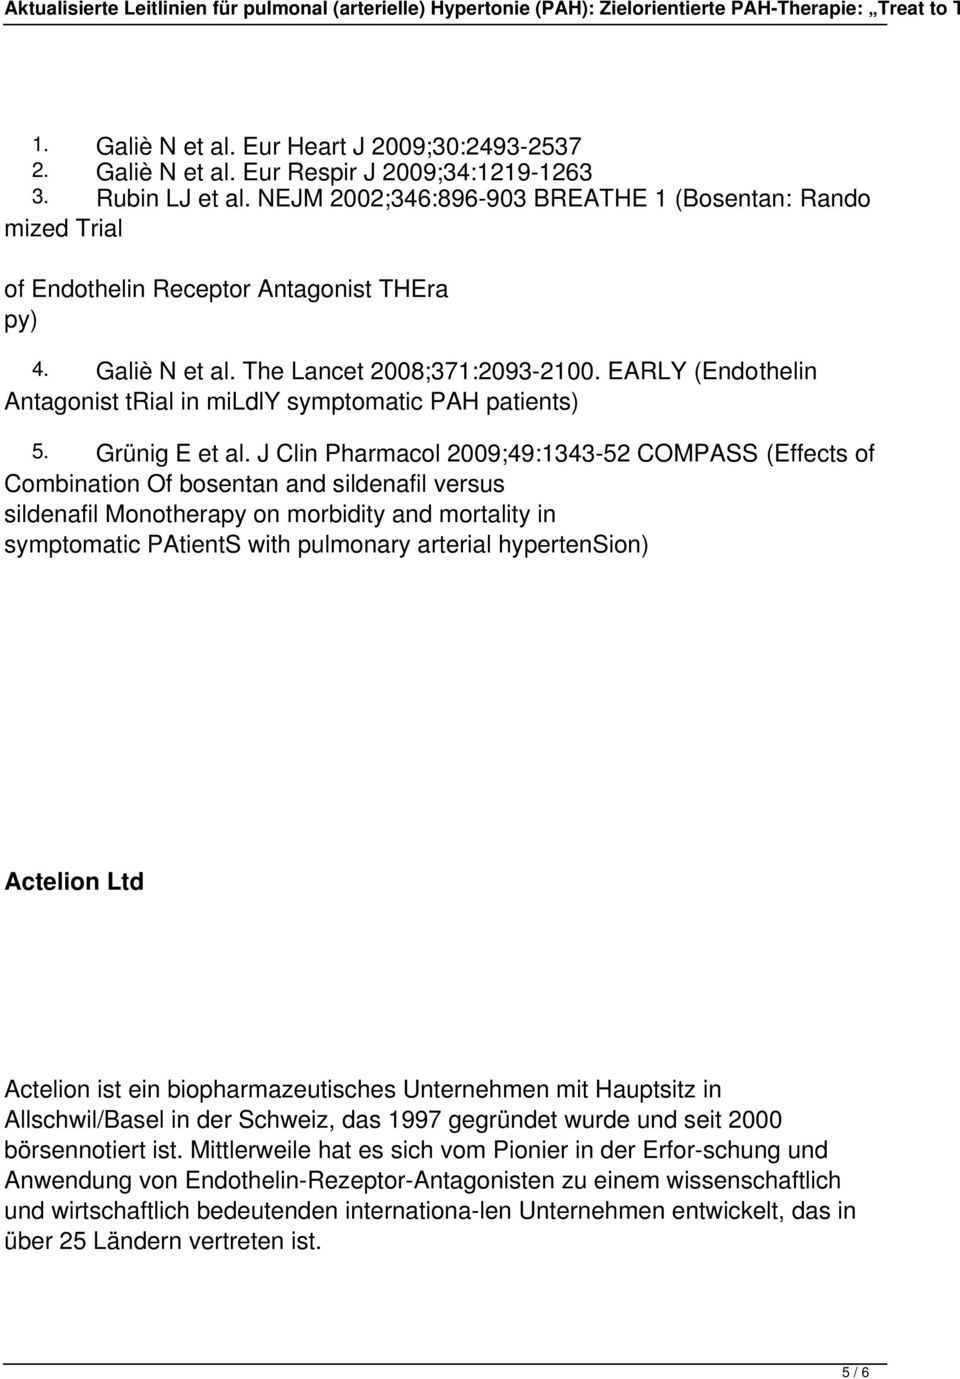 EARLY (Endothelin Antagonist trial in mildly symptomatic PAH patients) 5. Grünig E et al.